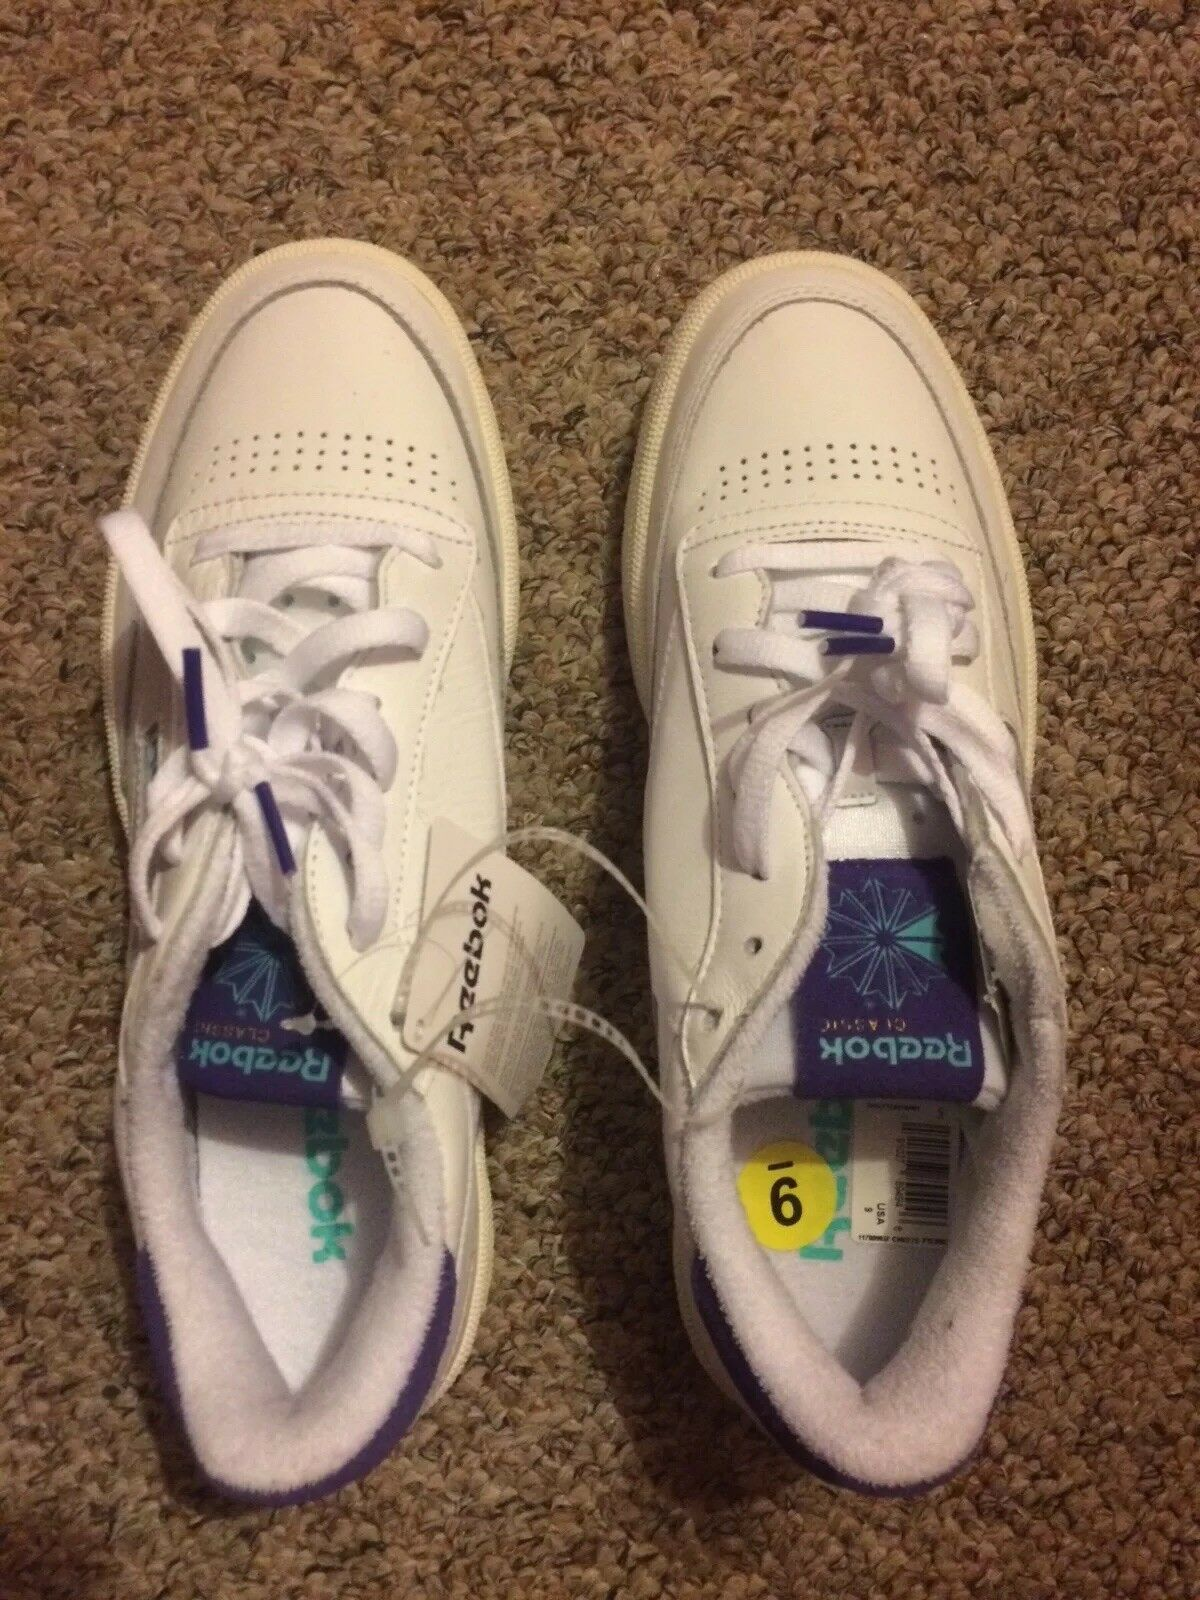 88c5db8af15f8f Reebok Mens Size 9 White White White Shoes Sneakers Purple Off White New  25245b